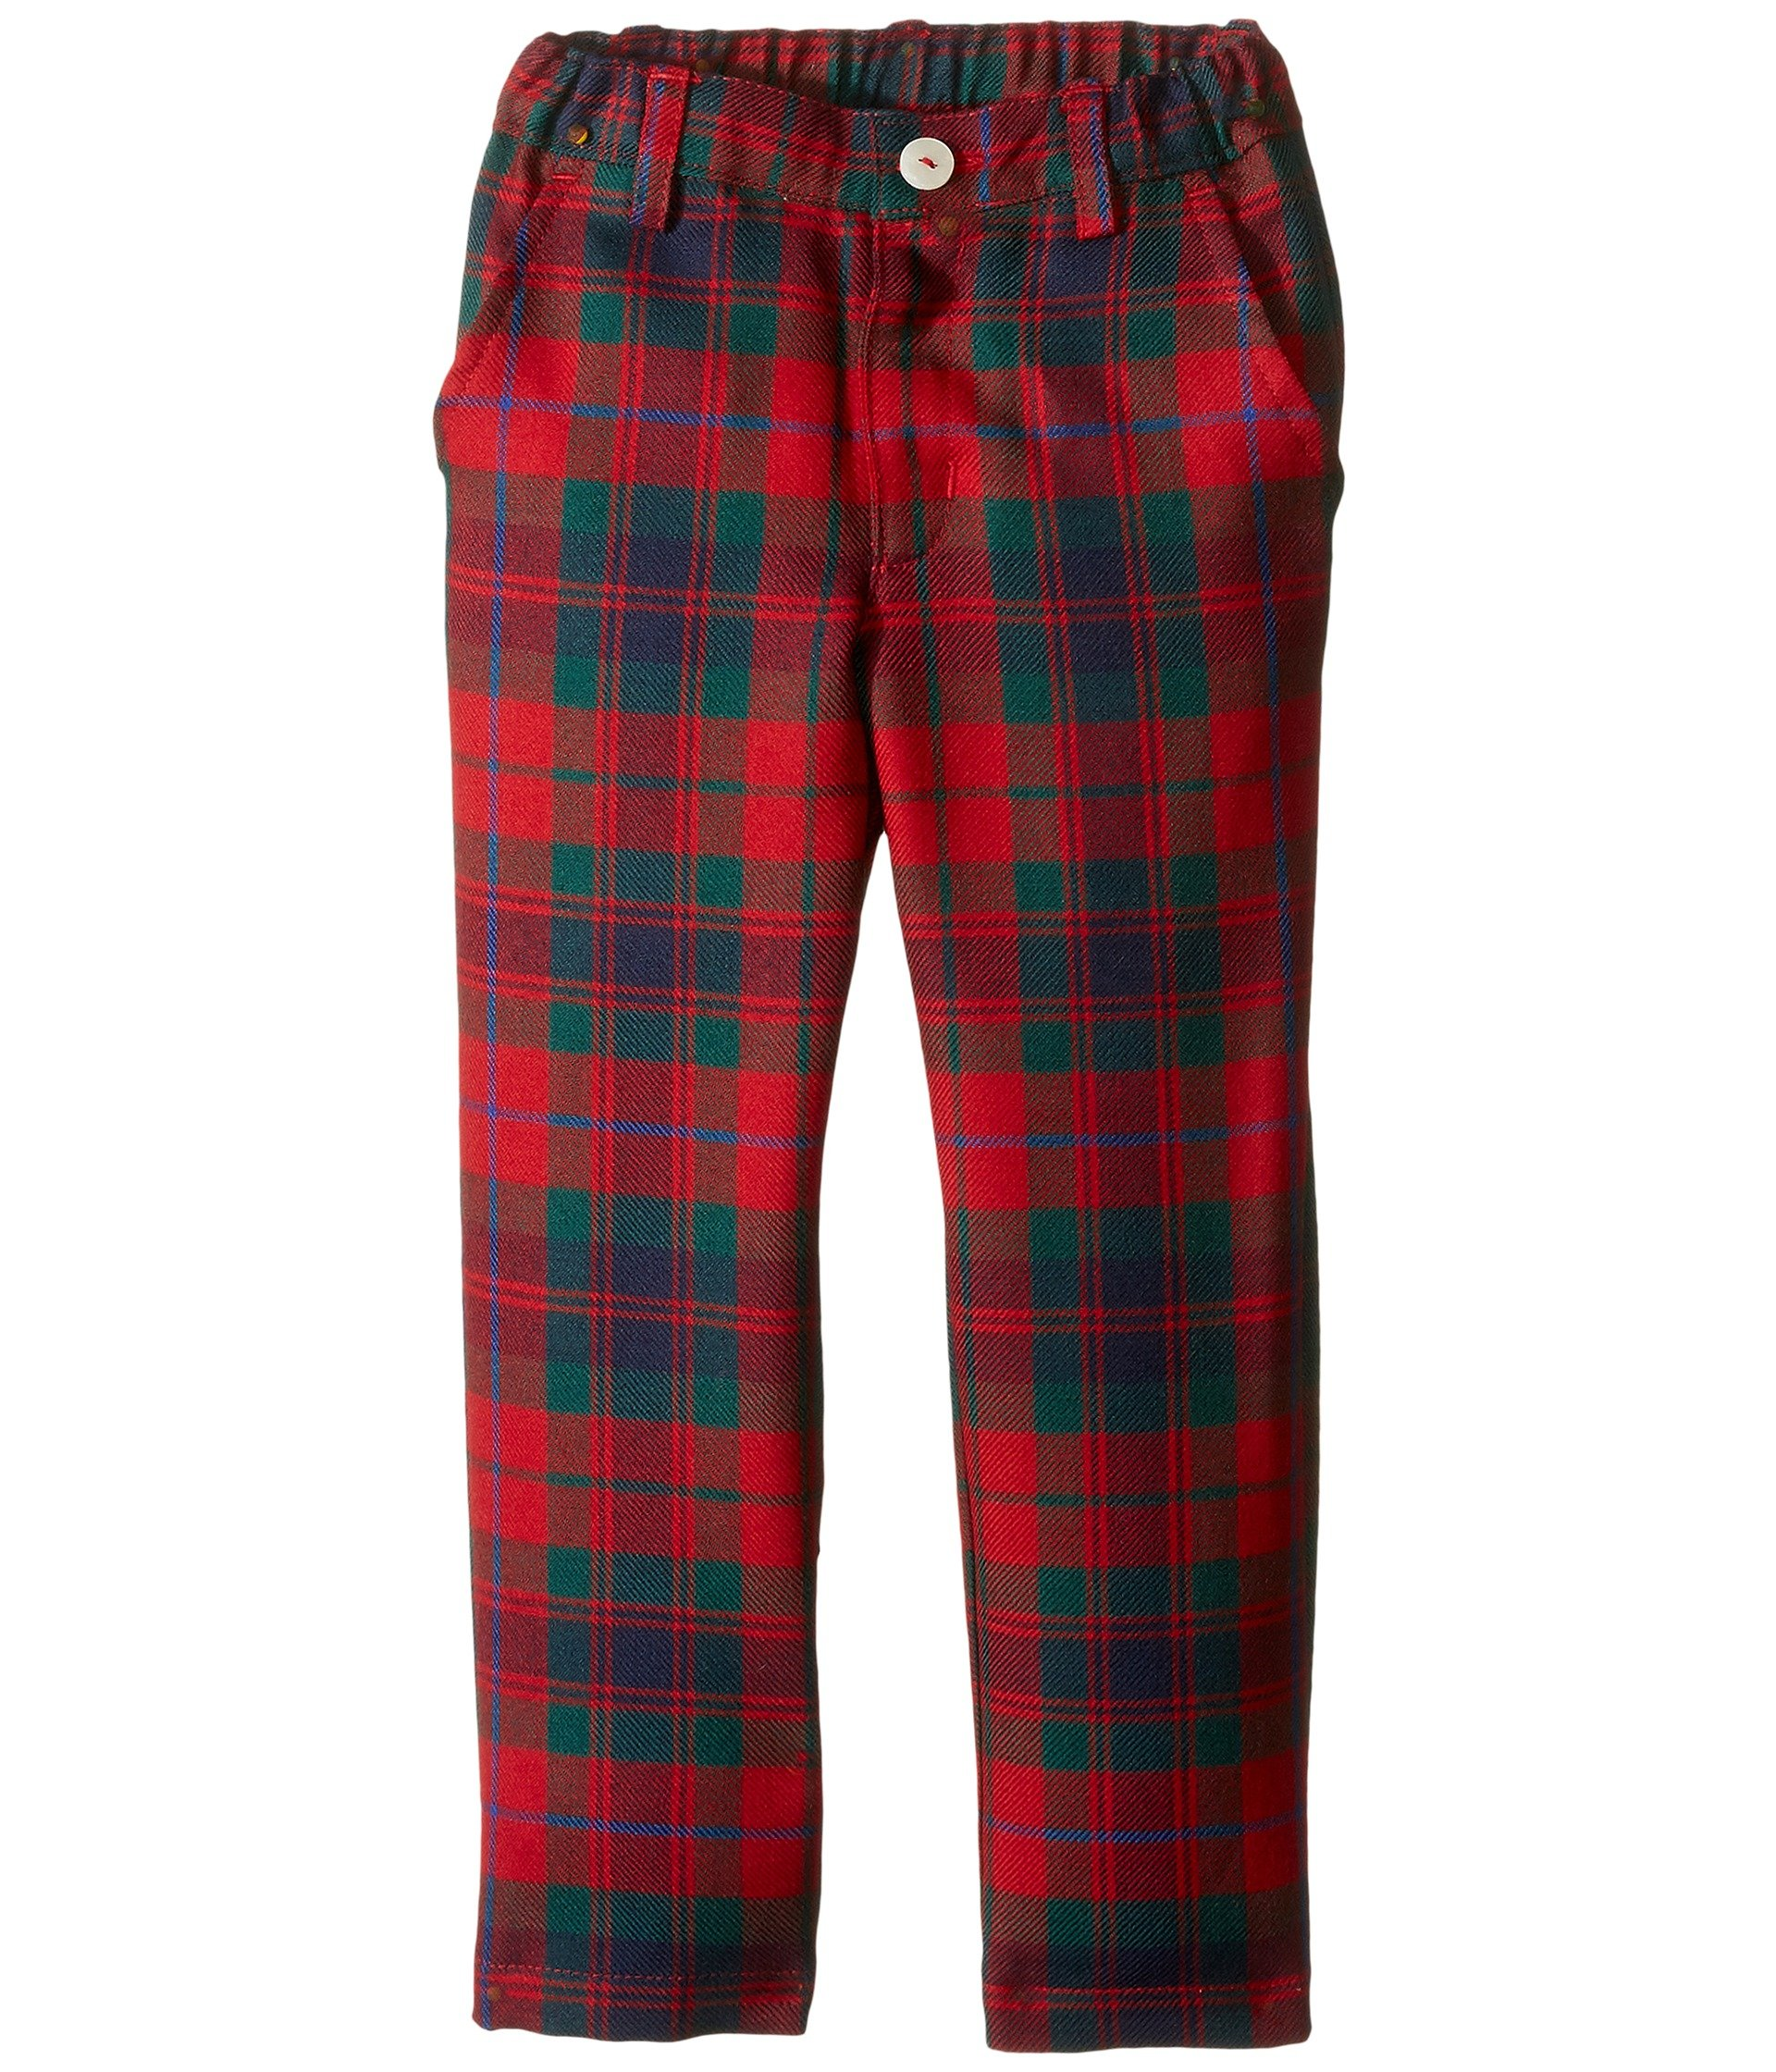 Oscar de la Renta Childrenswear Baby Boy's Holiday Plaid Wool Classic Slim Pants (Toddler/Little Kids/Big Kids) Ruby Multi Pants